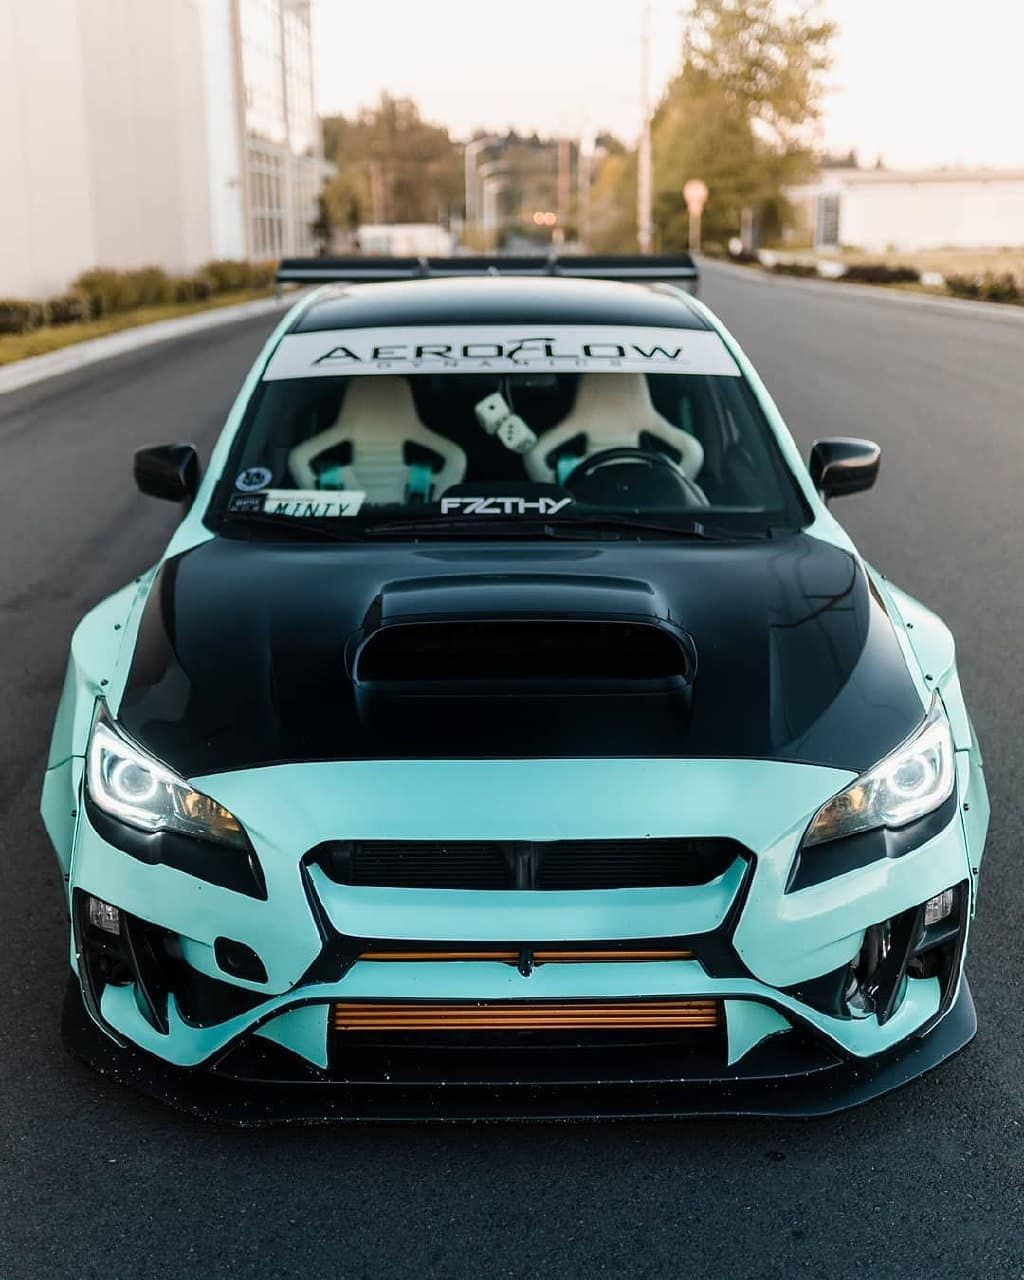 Check Out Our Subaru STI T-Shirts Collection